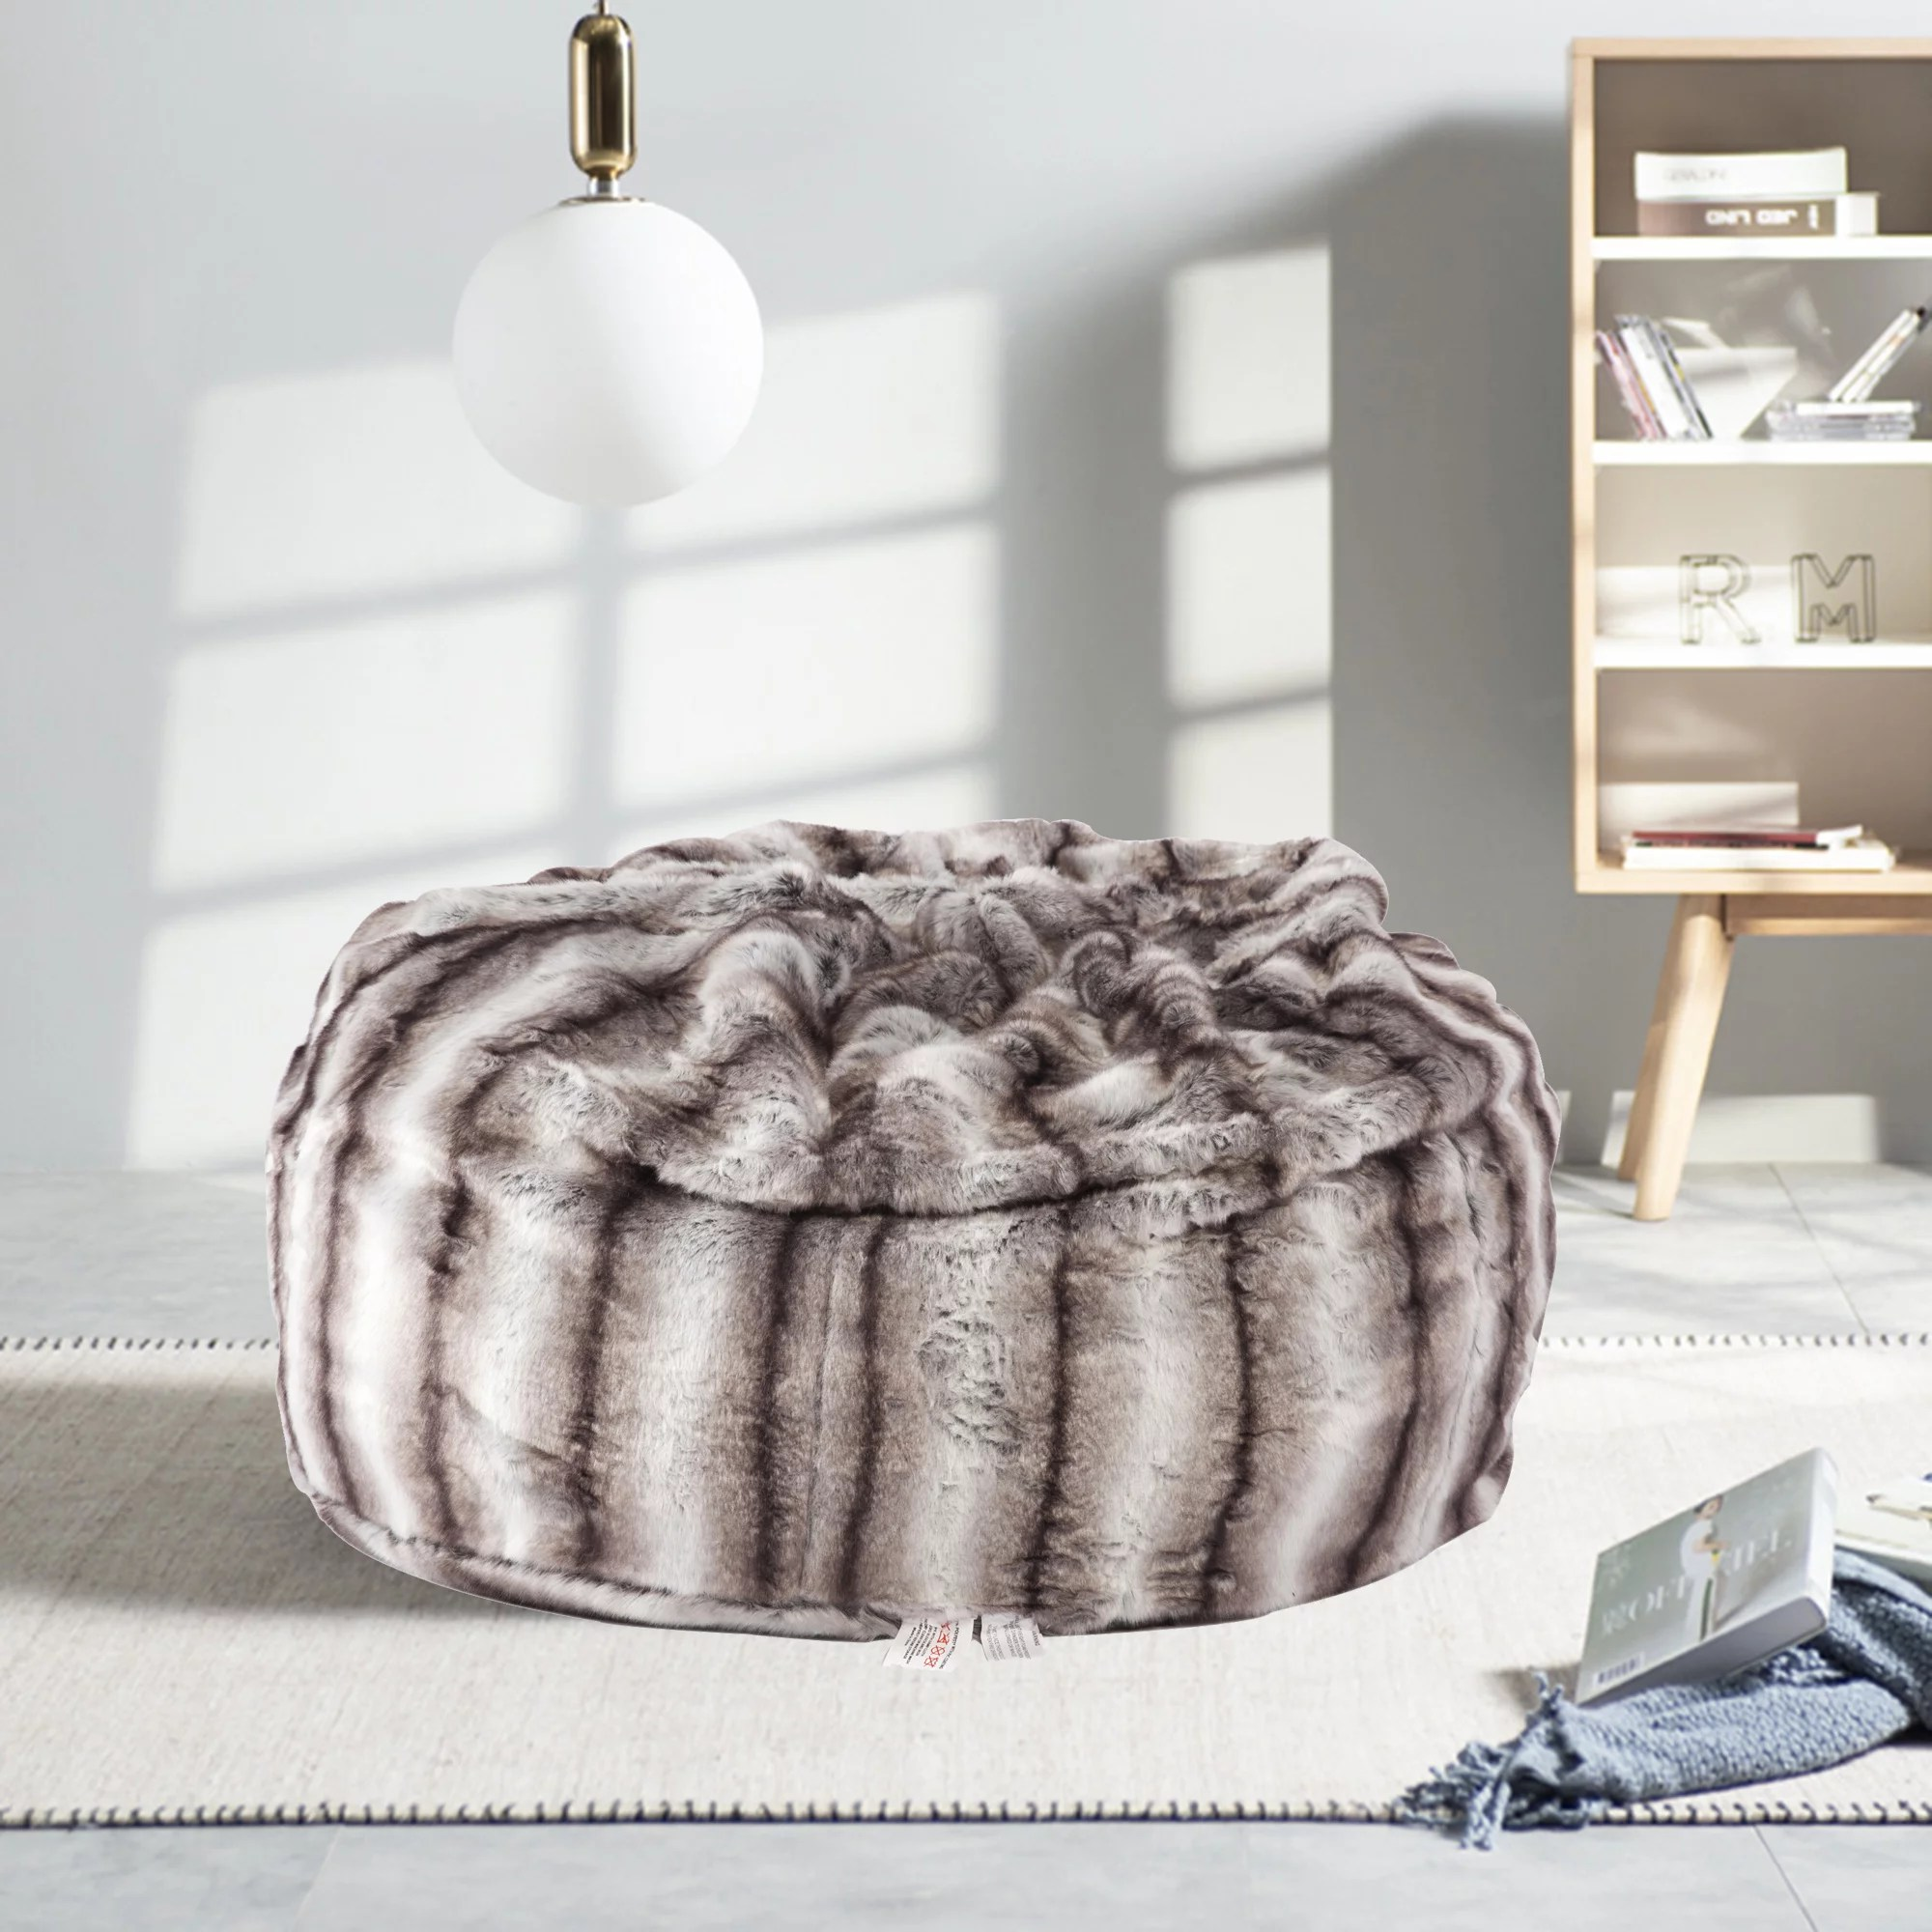 beanless sofa air chair eero saarinen karmas product faux fur bean bag luxury and comfy big chairs plush furry